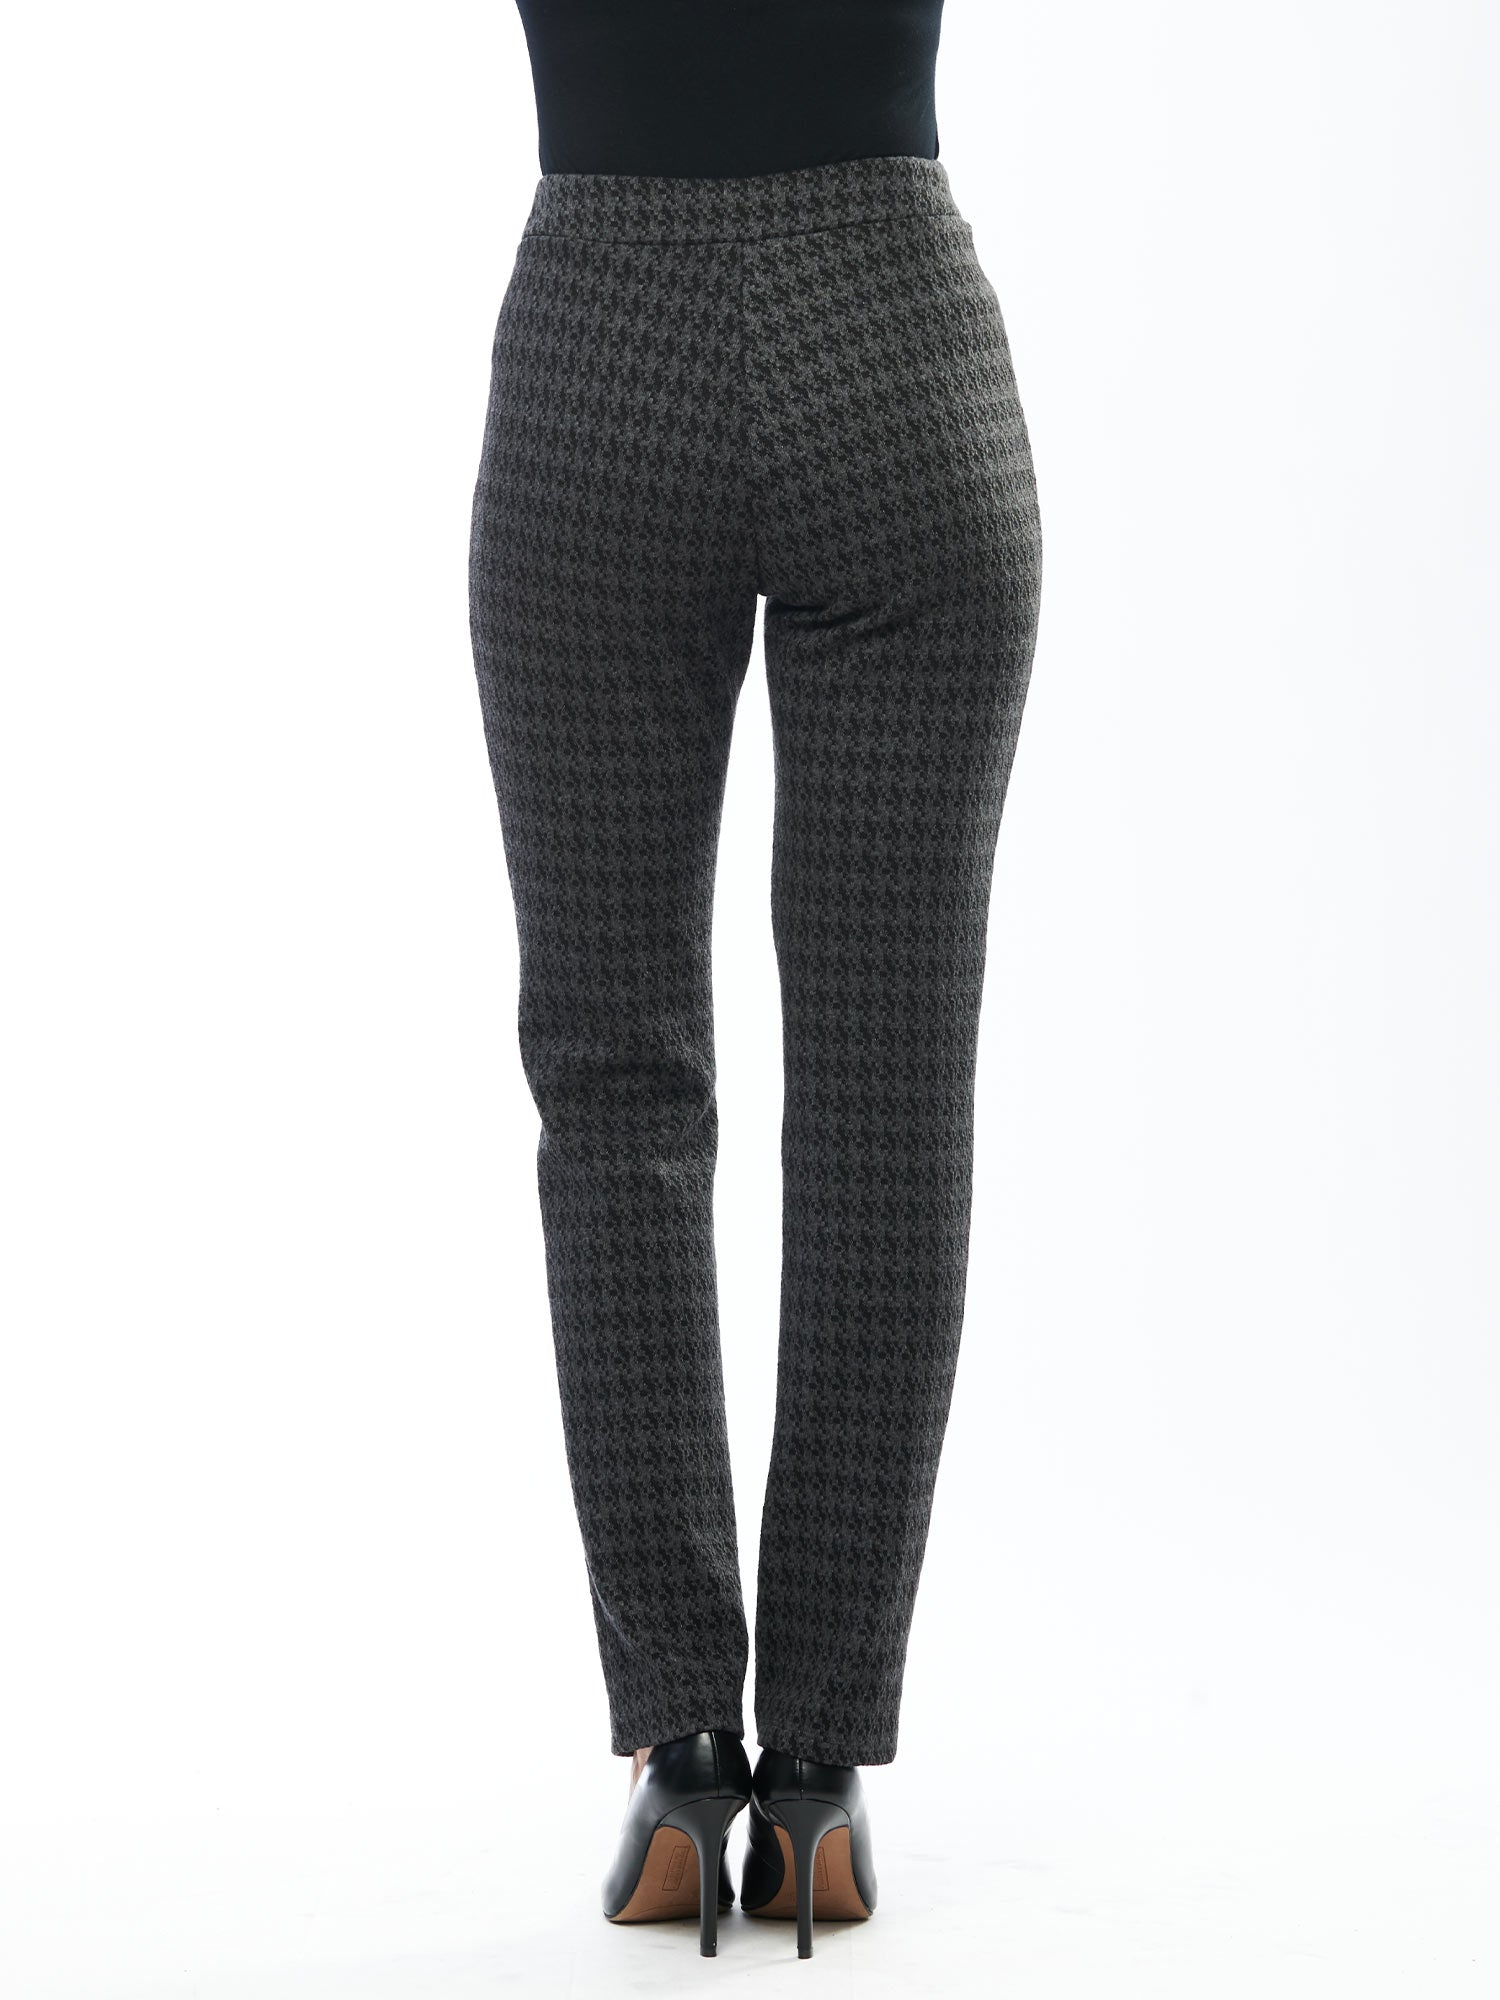 Avery Pull On Bamboo Pant - Houndstooth